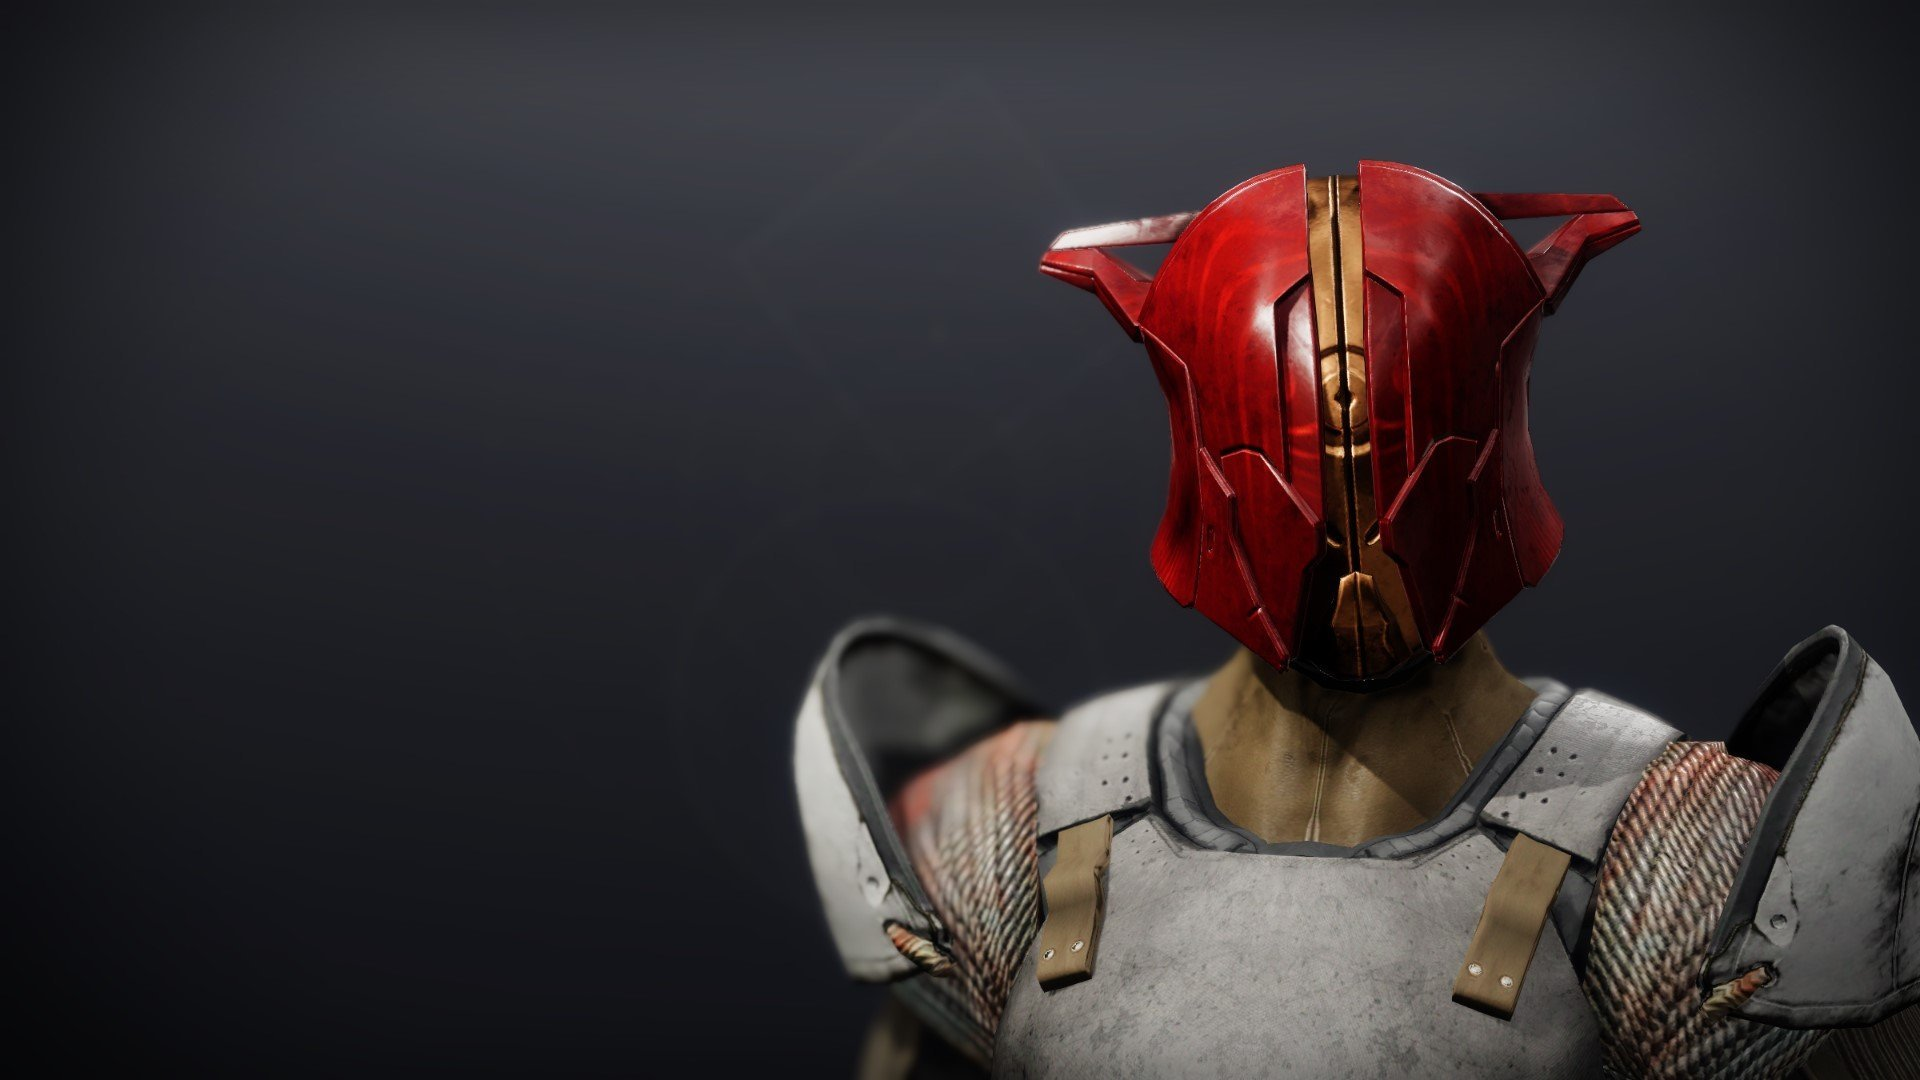 An in-game render of the Forged Machinist Helm.